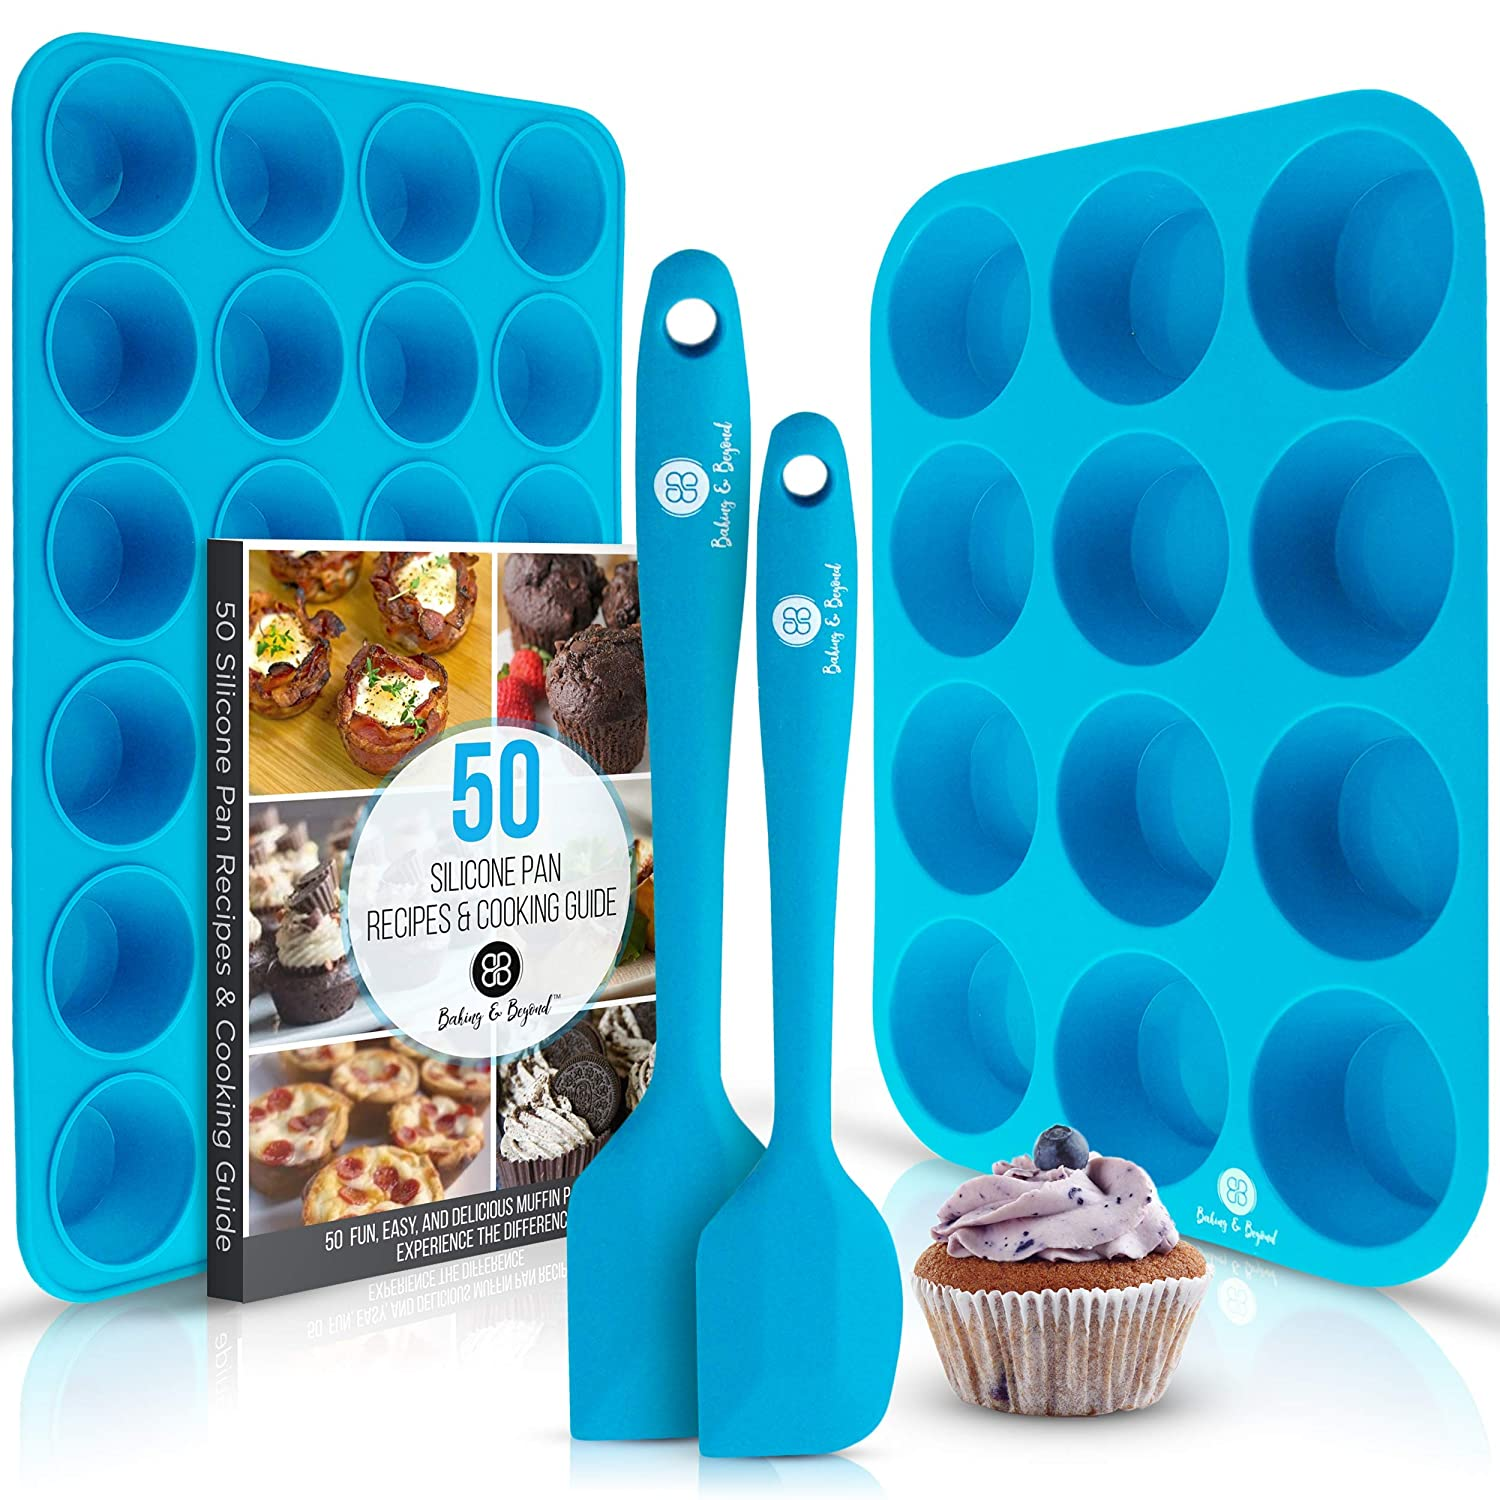 Silicone Muffin and Cupcake Pans - Large 12 Cup Muffins Tray, 24 Cups Mini Cupcakes Pan, 2 Spatulas, Recipe E-book by B&B  Non Stick Baking Molds Set   Oven & Dishwasher Safe